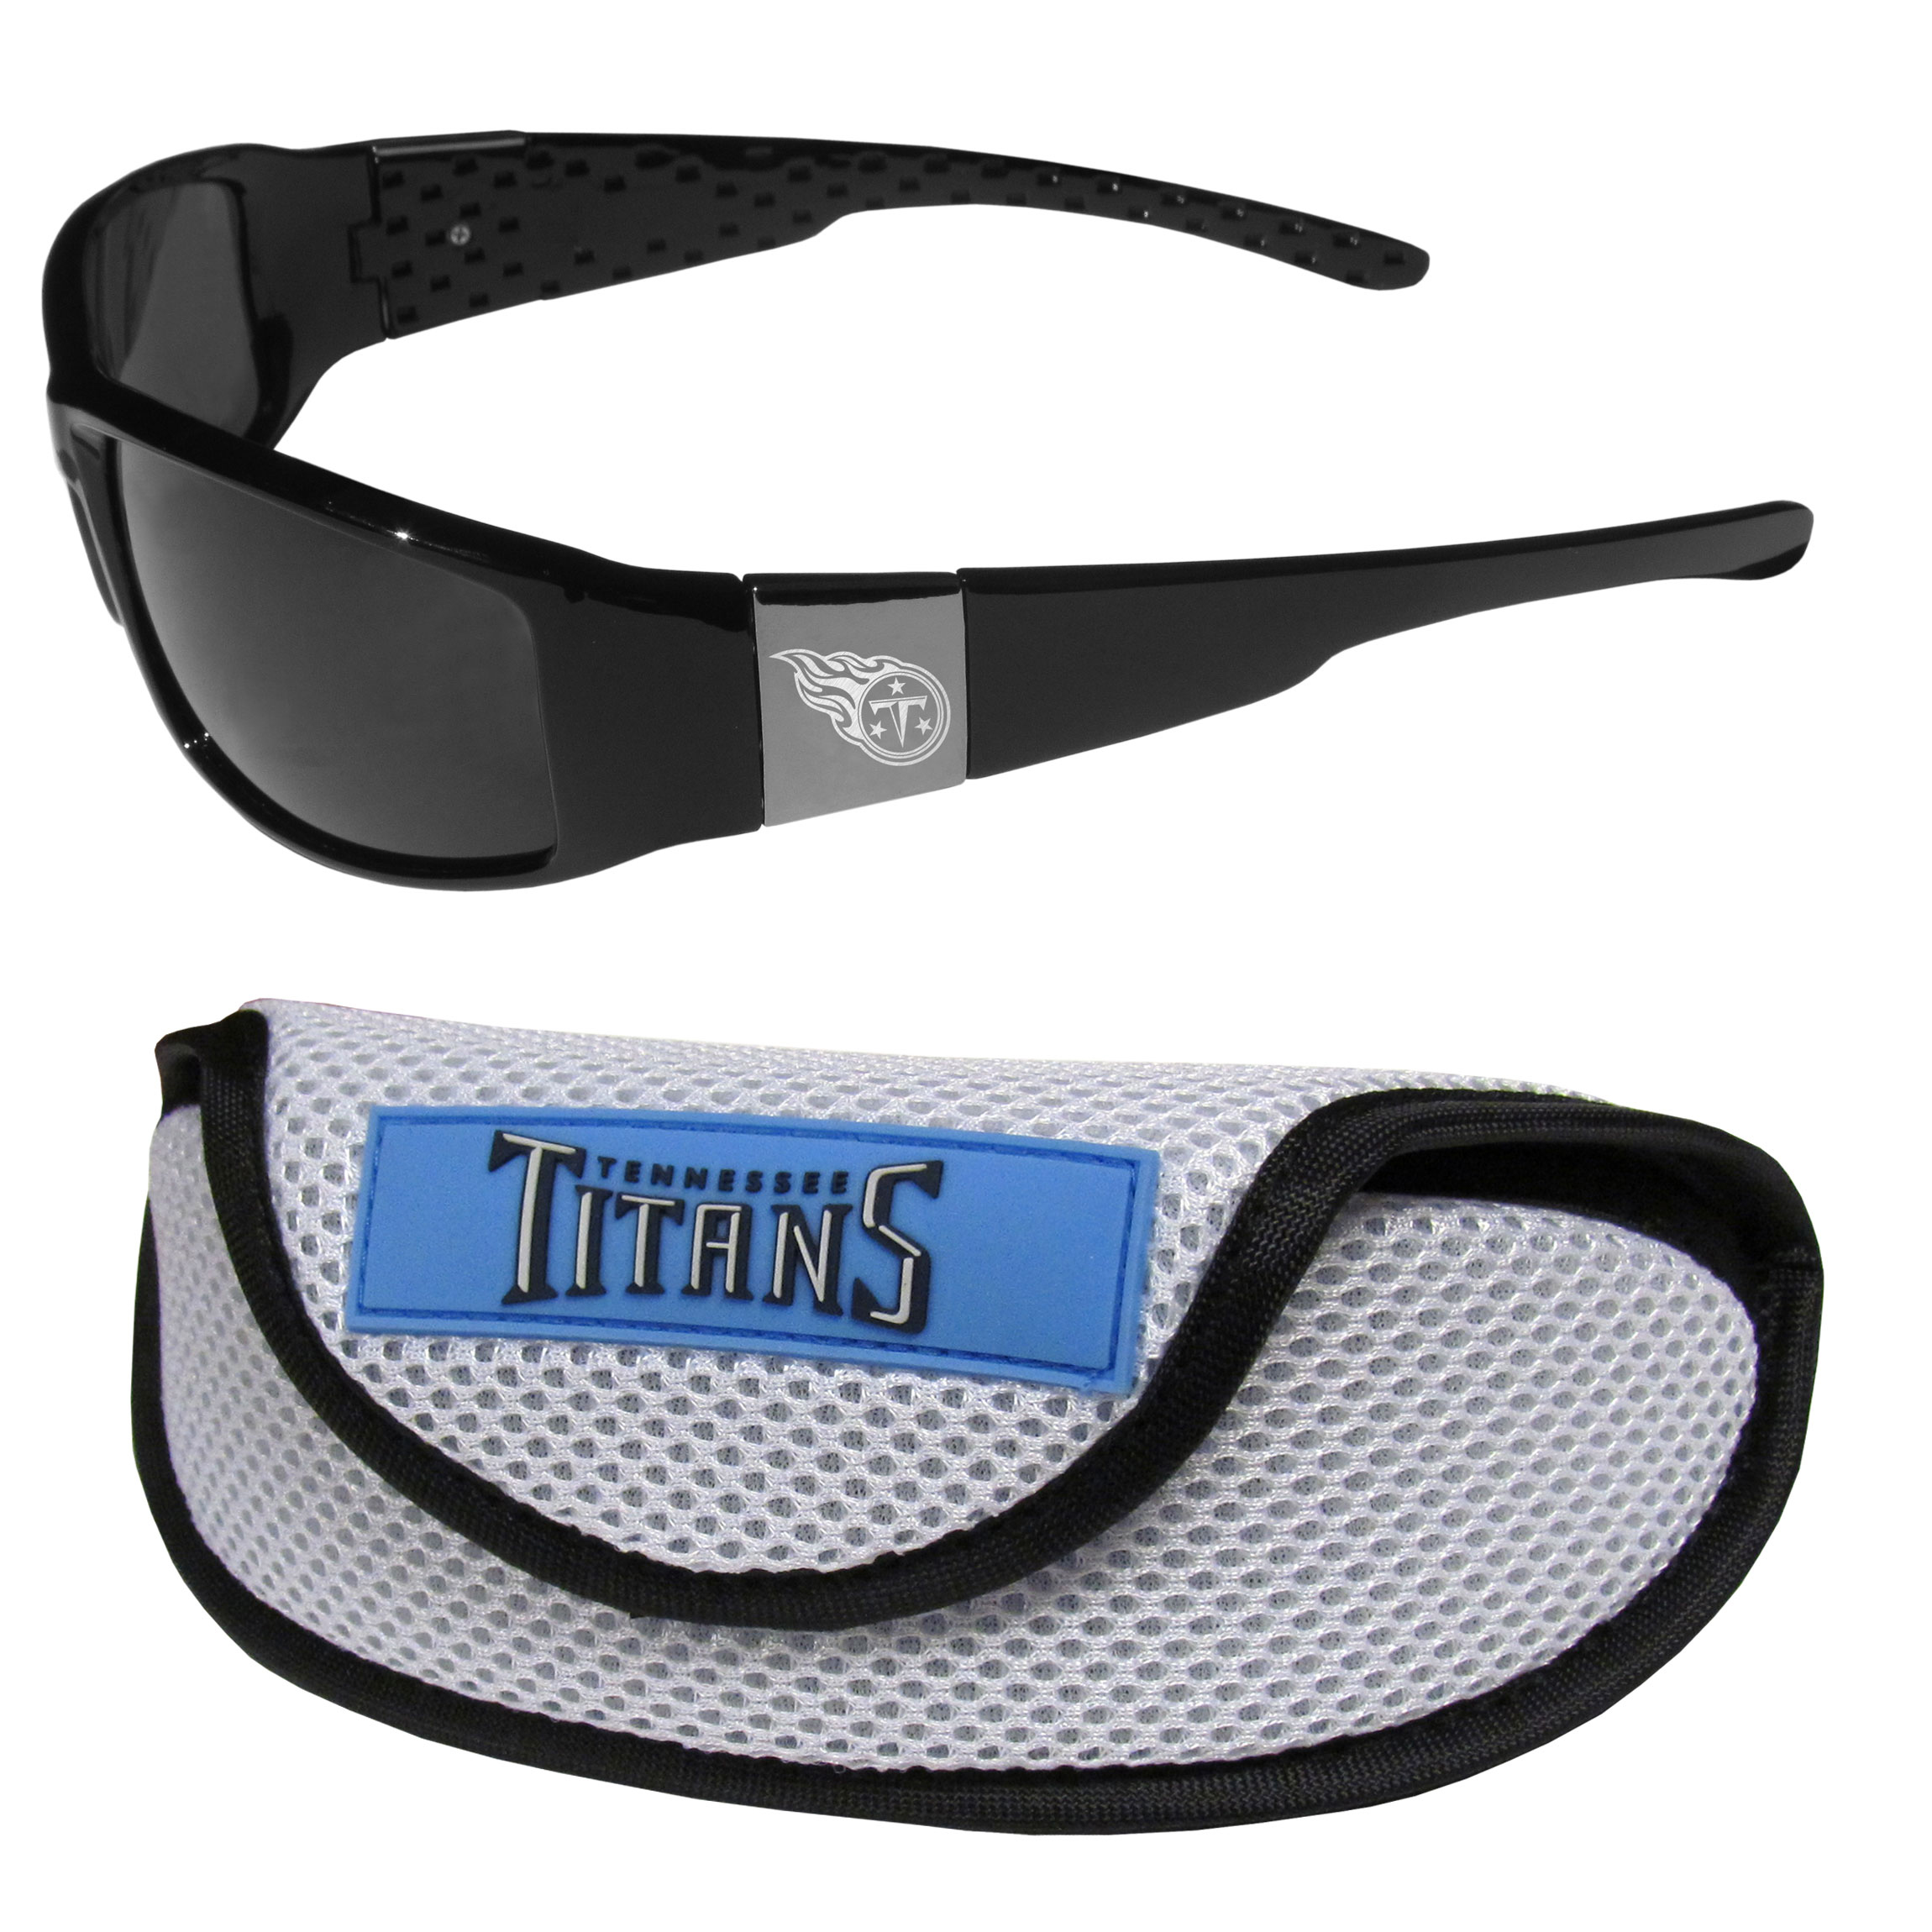 Tennessee Titans Chrome Wrap Sunglasses and Sports Case - Our sleek and stylish Tennessee Titans chrome wrap sunglasses and our sporty mesh case. The sunglasses feature etched team logos on each arm and 100% UVA/UVB protection. The case features a large and colorful team emblem.